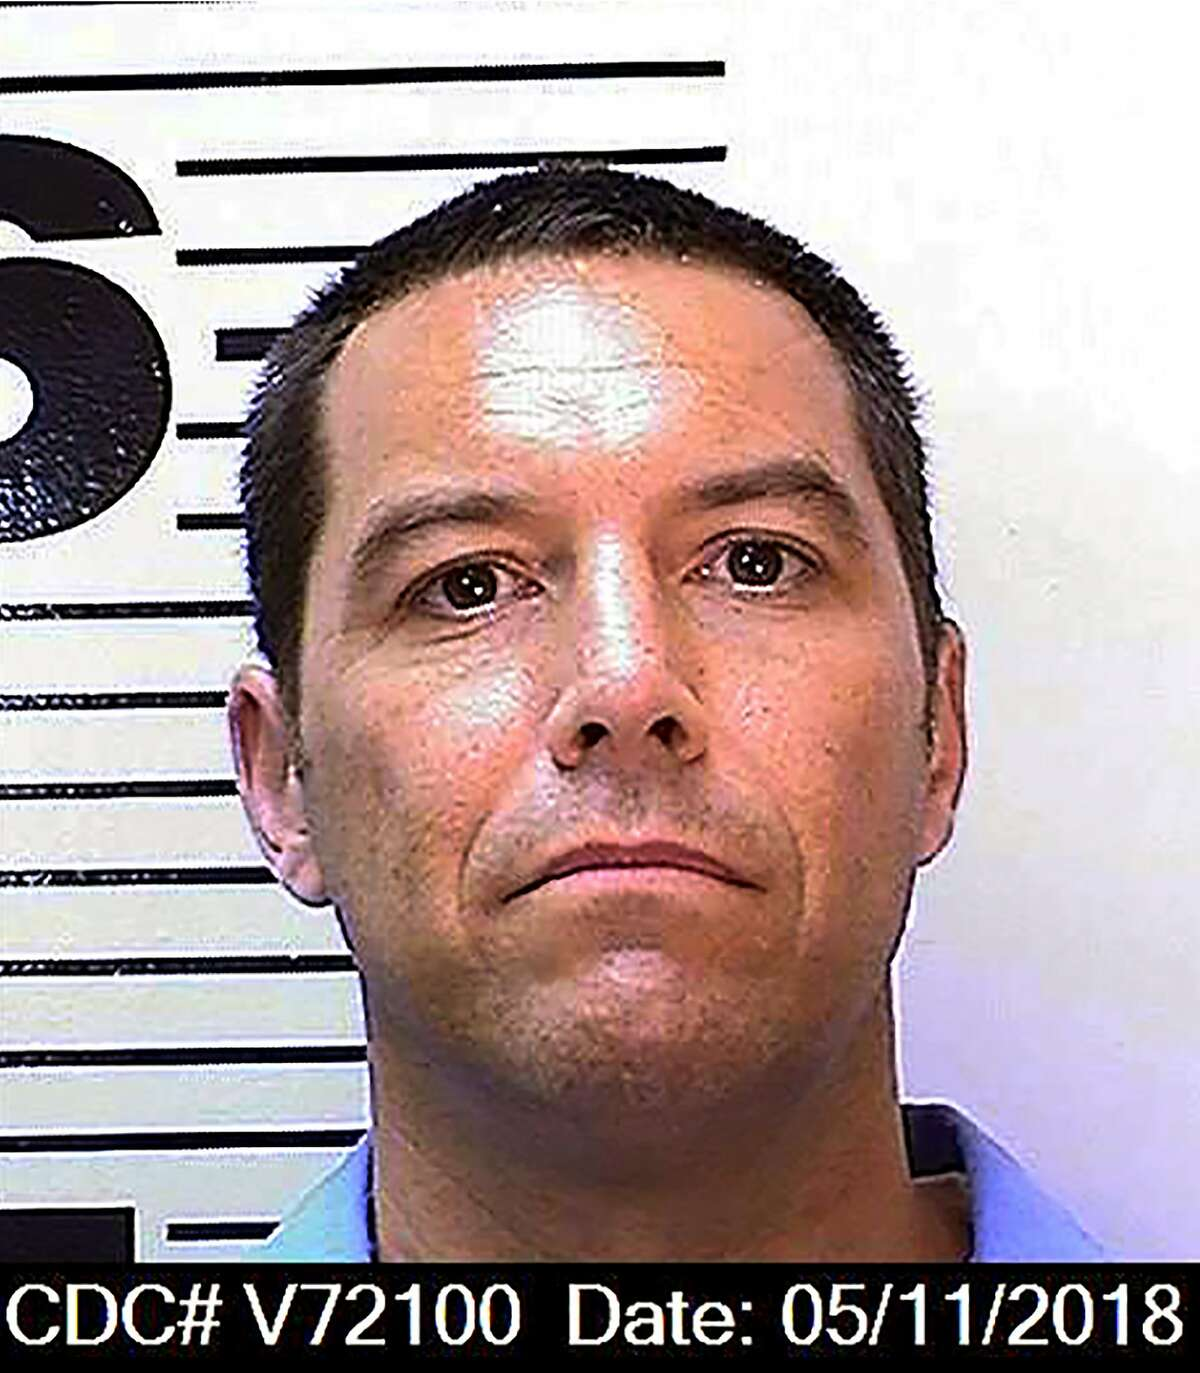 This May 11, 2018 photo from the California Department of Corrections and Rehabilitation shows Scott Peterson. Northern California prosecutors said Friday, Oct. 23, 2020, they will again seek the death penalty for Peterson in the slaying of his pregnant wife and unborn son nearly 19 years ago, even as a county judge considers throwing out his underlying conviction because of a tainted juror. Stanislaus County District Attorney Birgit Fladager acted after the California Supreme Court in August overturned Peterson's 2005 death sentence in a case that attracted worldwide attention. (California Department of Corrections and Rehabilitation via AP)